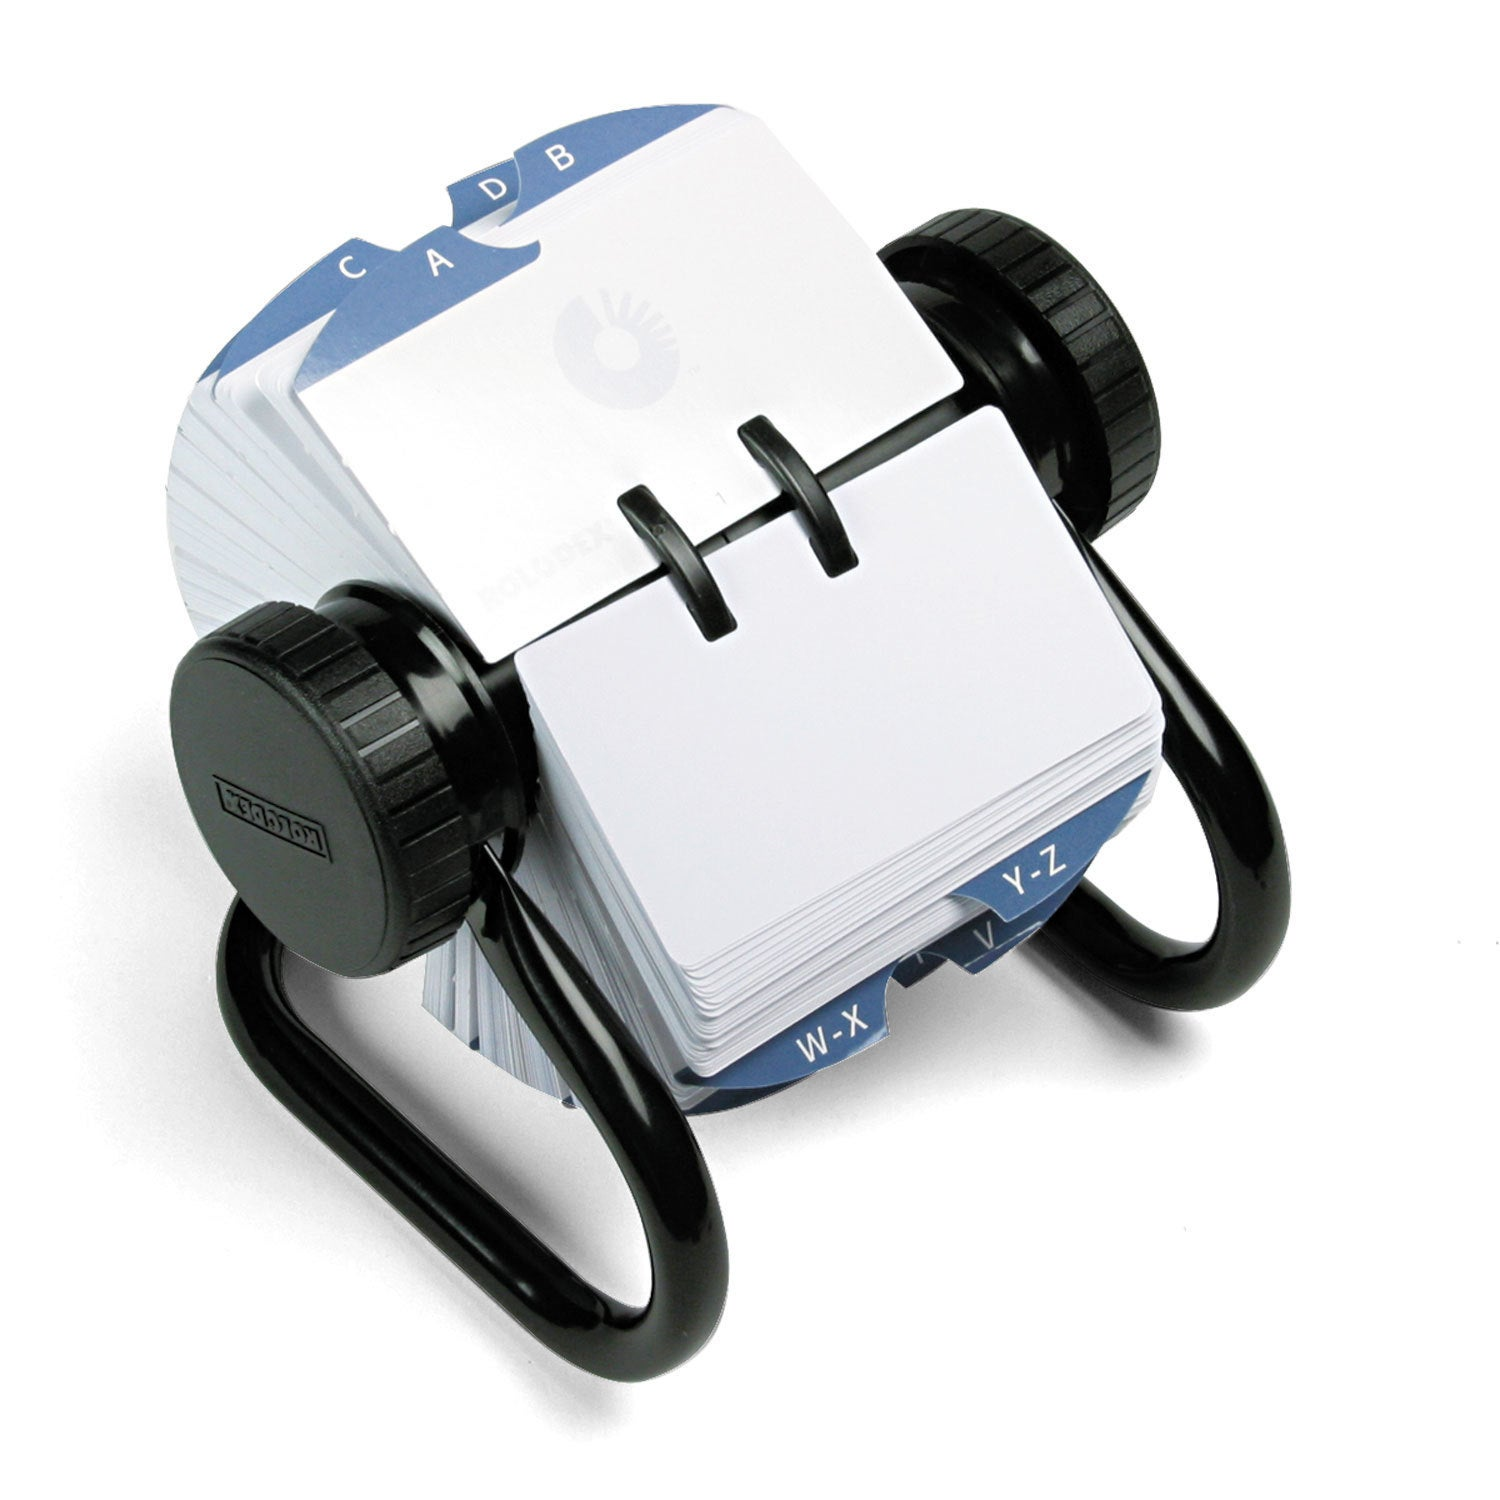 Rolodex Open Rotary Card File Holds 500 2-1/4 x 4 Cards B...